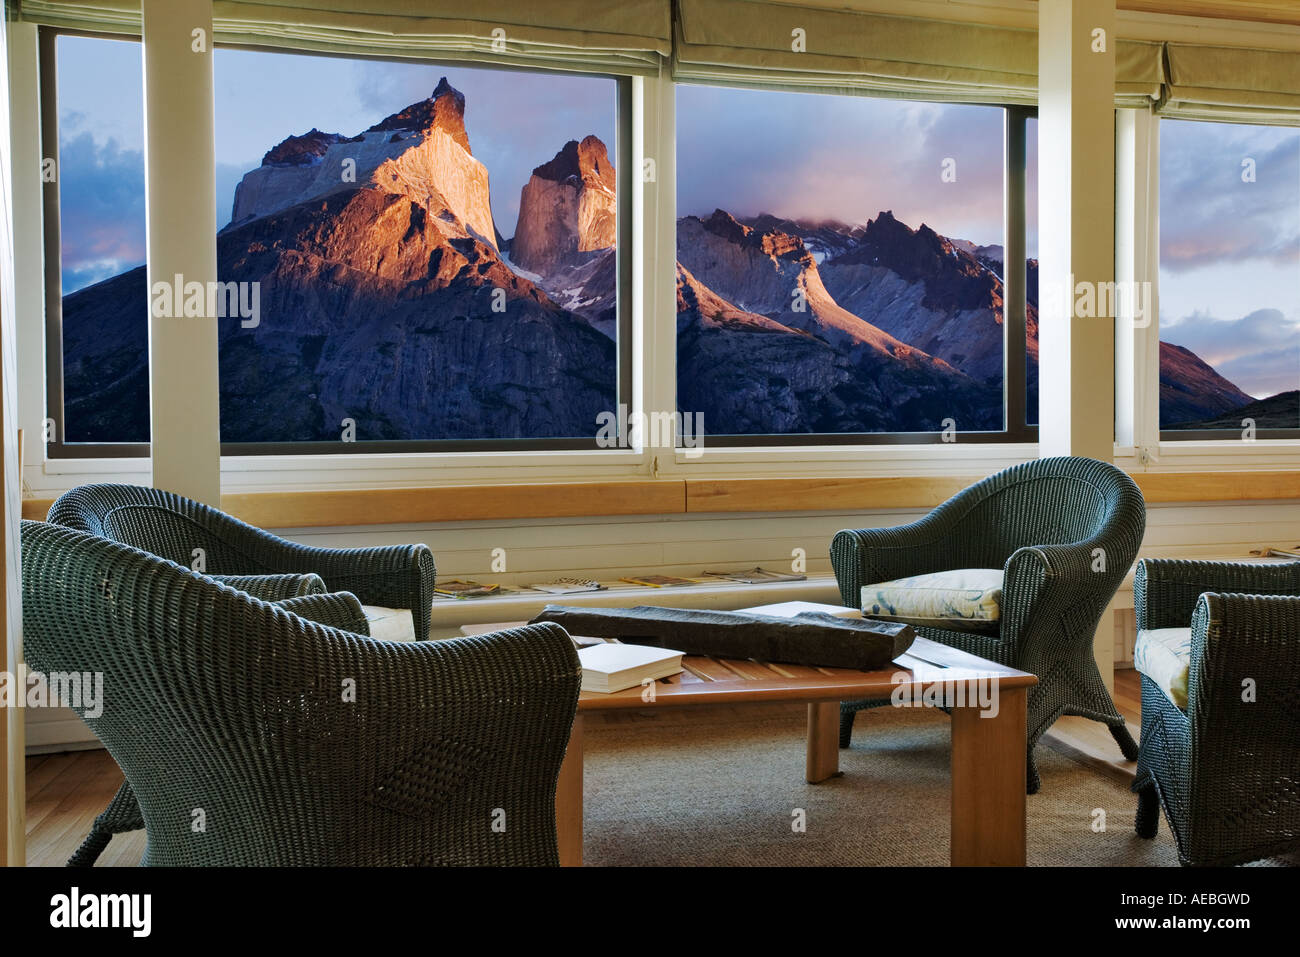 View of Los Cuernos from hotel windows.Torres del Paine National Park Chile South America - Stock Image